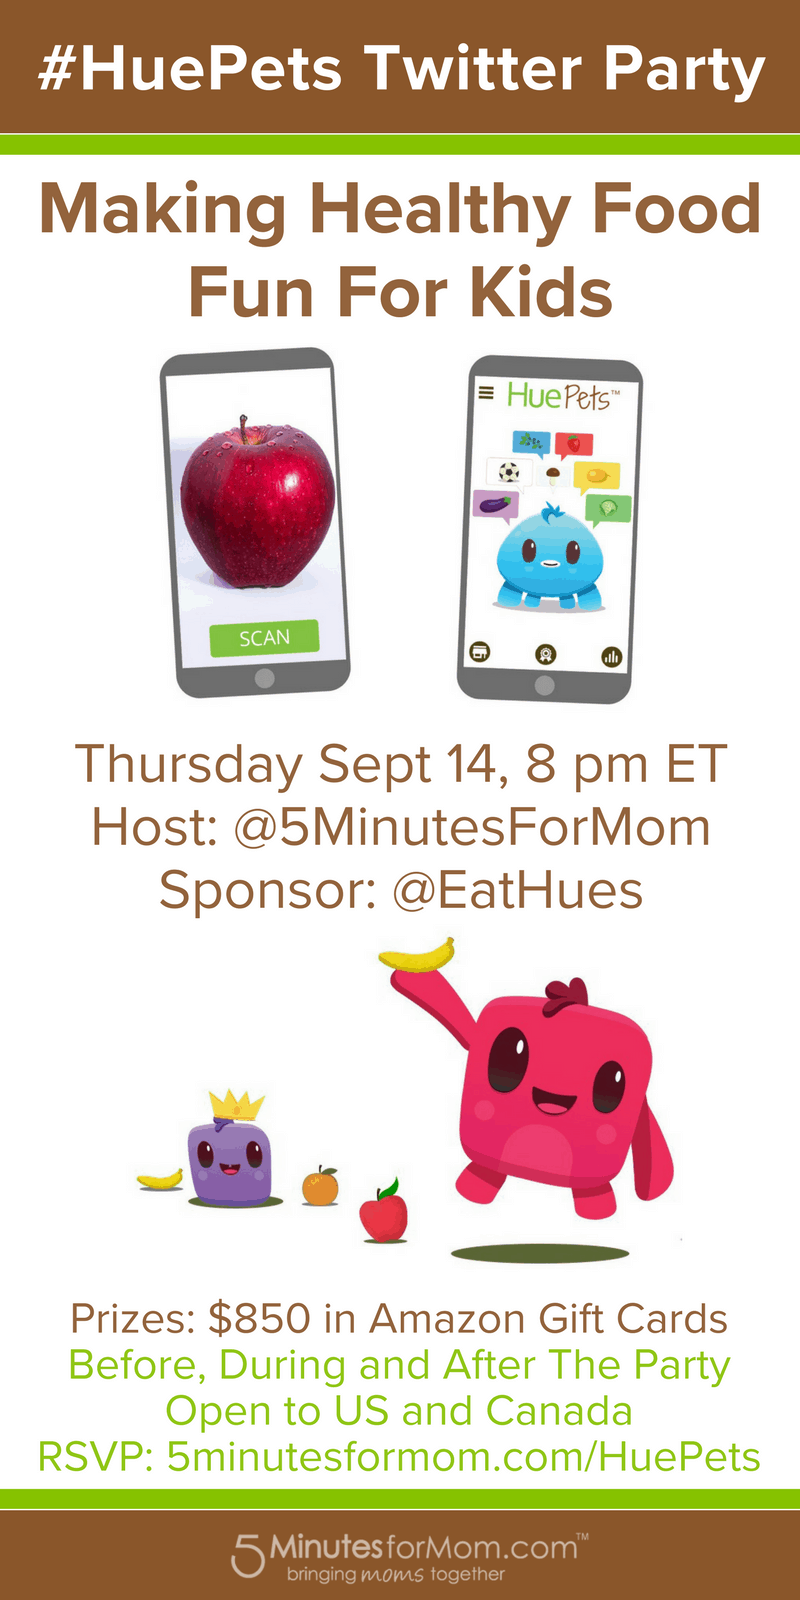 HuePets Twitter Party - Make Healthy Food Fun For Kids